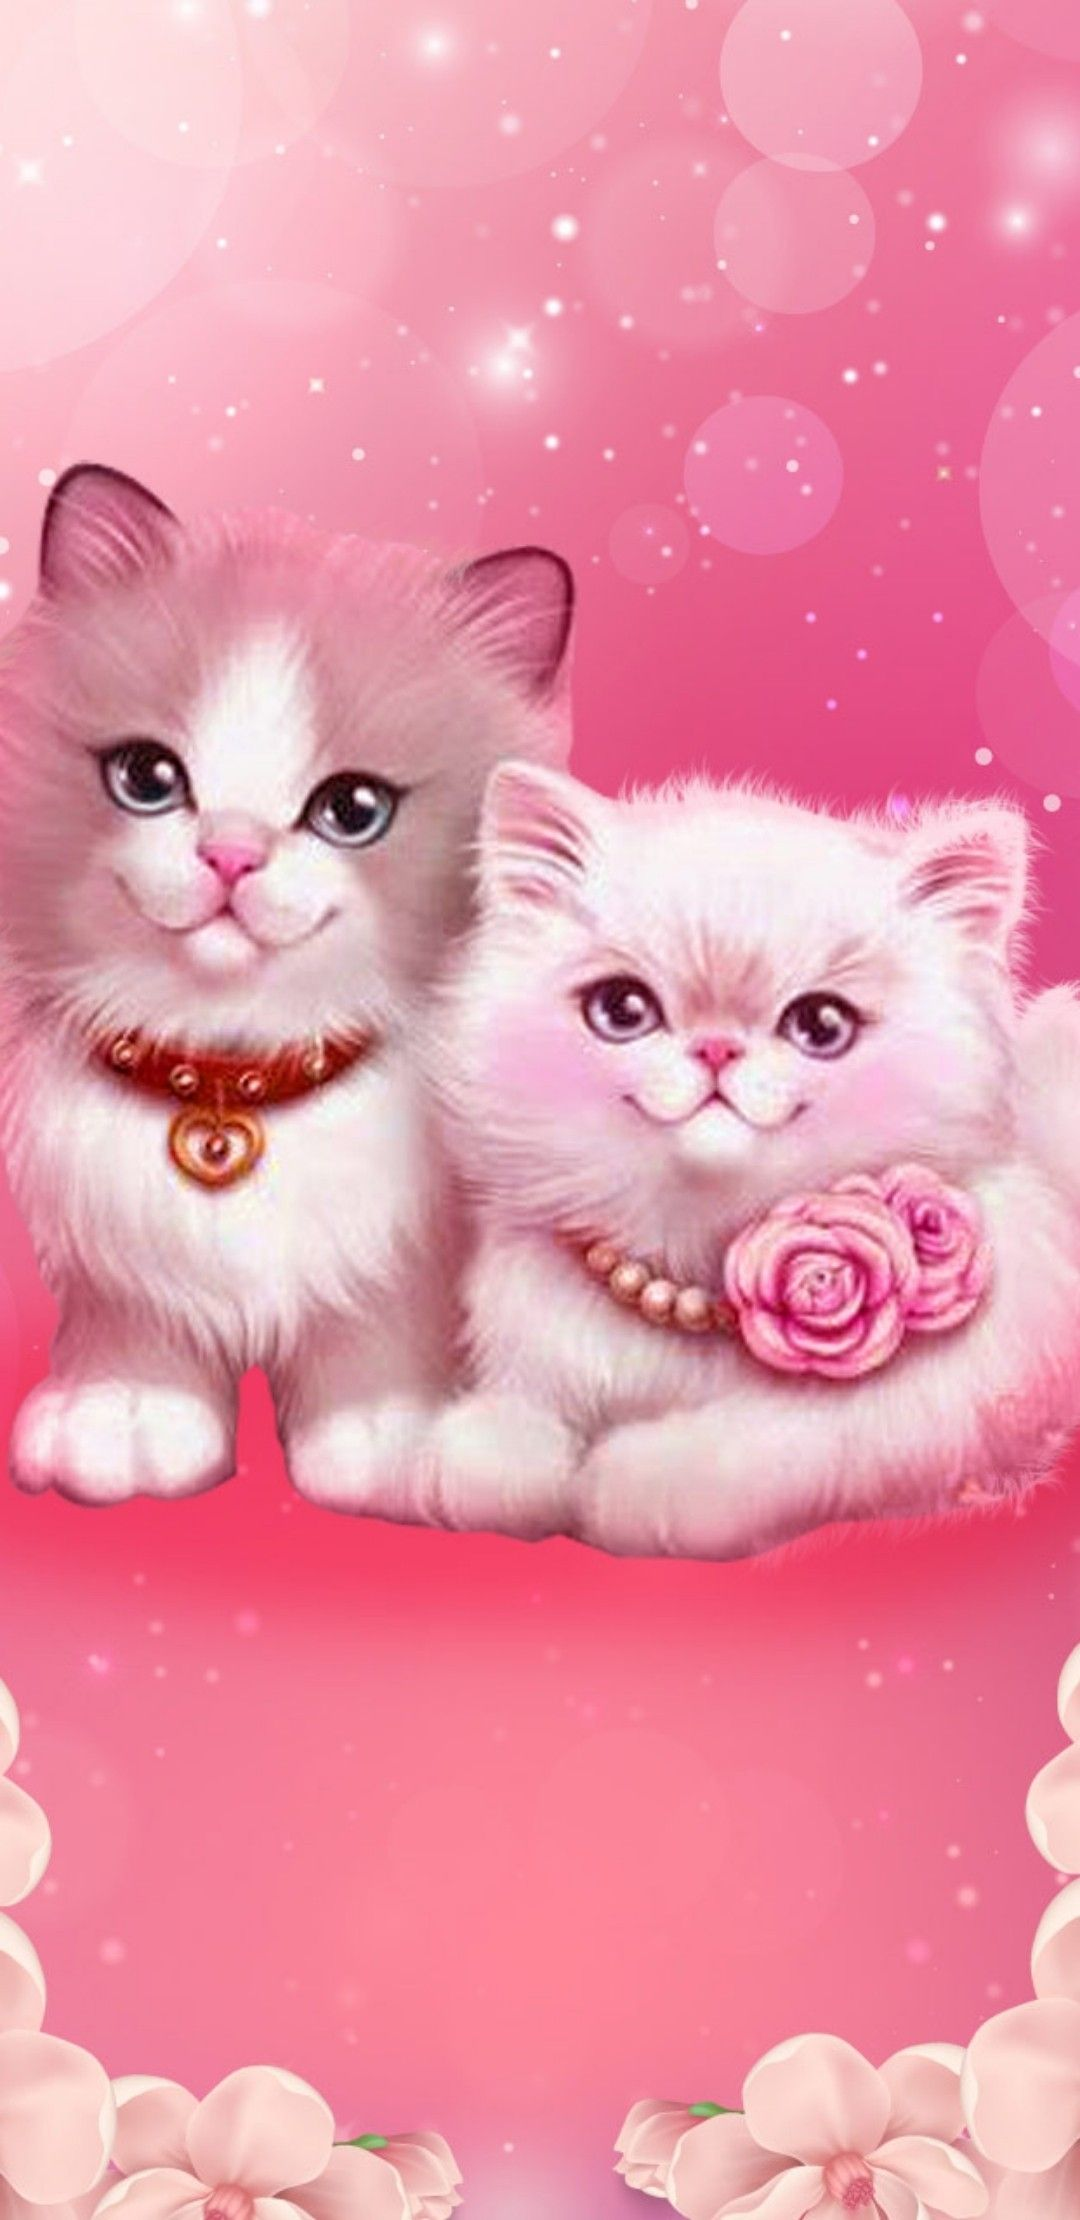 Cute Fluffy Tiny Kittens Around Cute Cartoon Animals To Draw Step By Step Cute Pictures Of Animals In Love Kittens Cutest Kitten Adoption Cute Cats